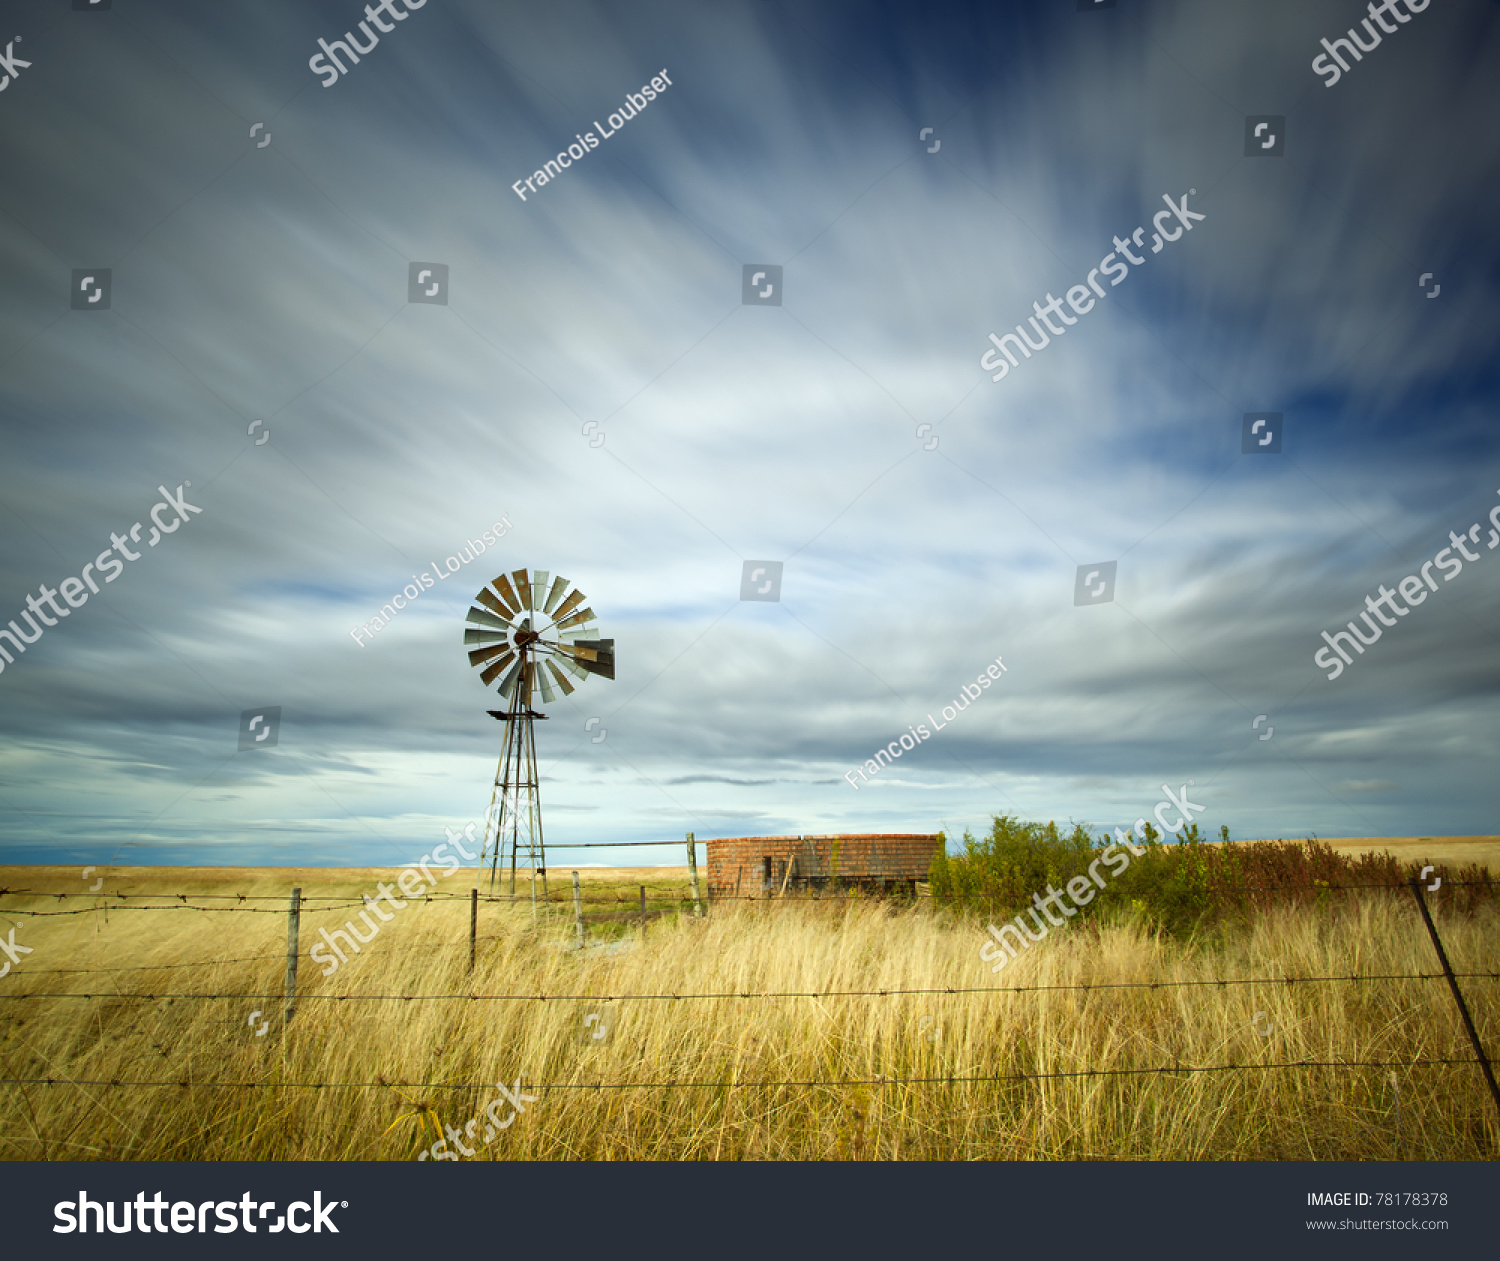 Windmill In Field With Motion In The Clouds Stock Photo ...